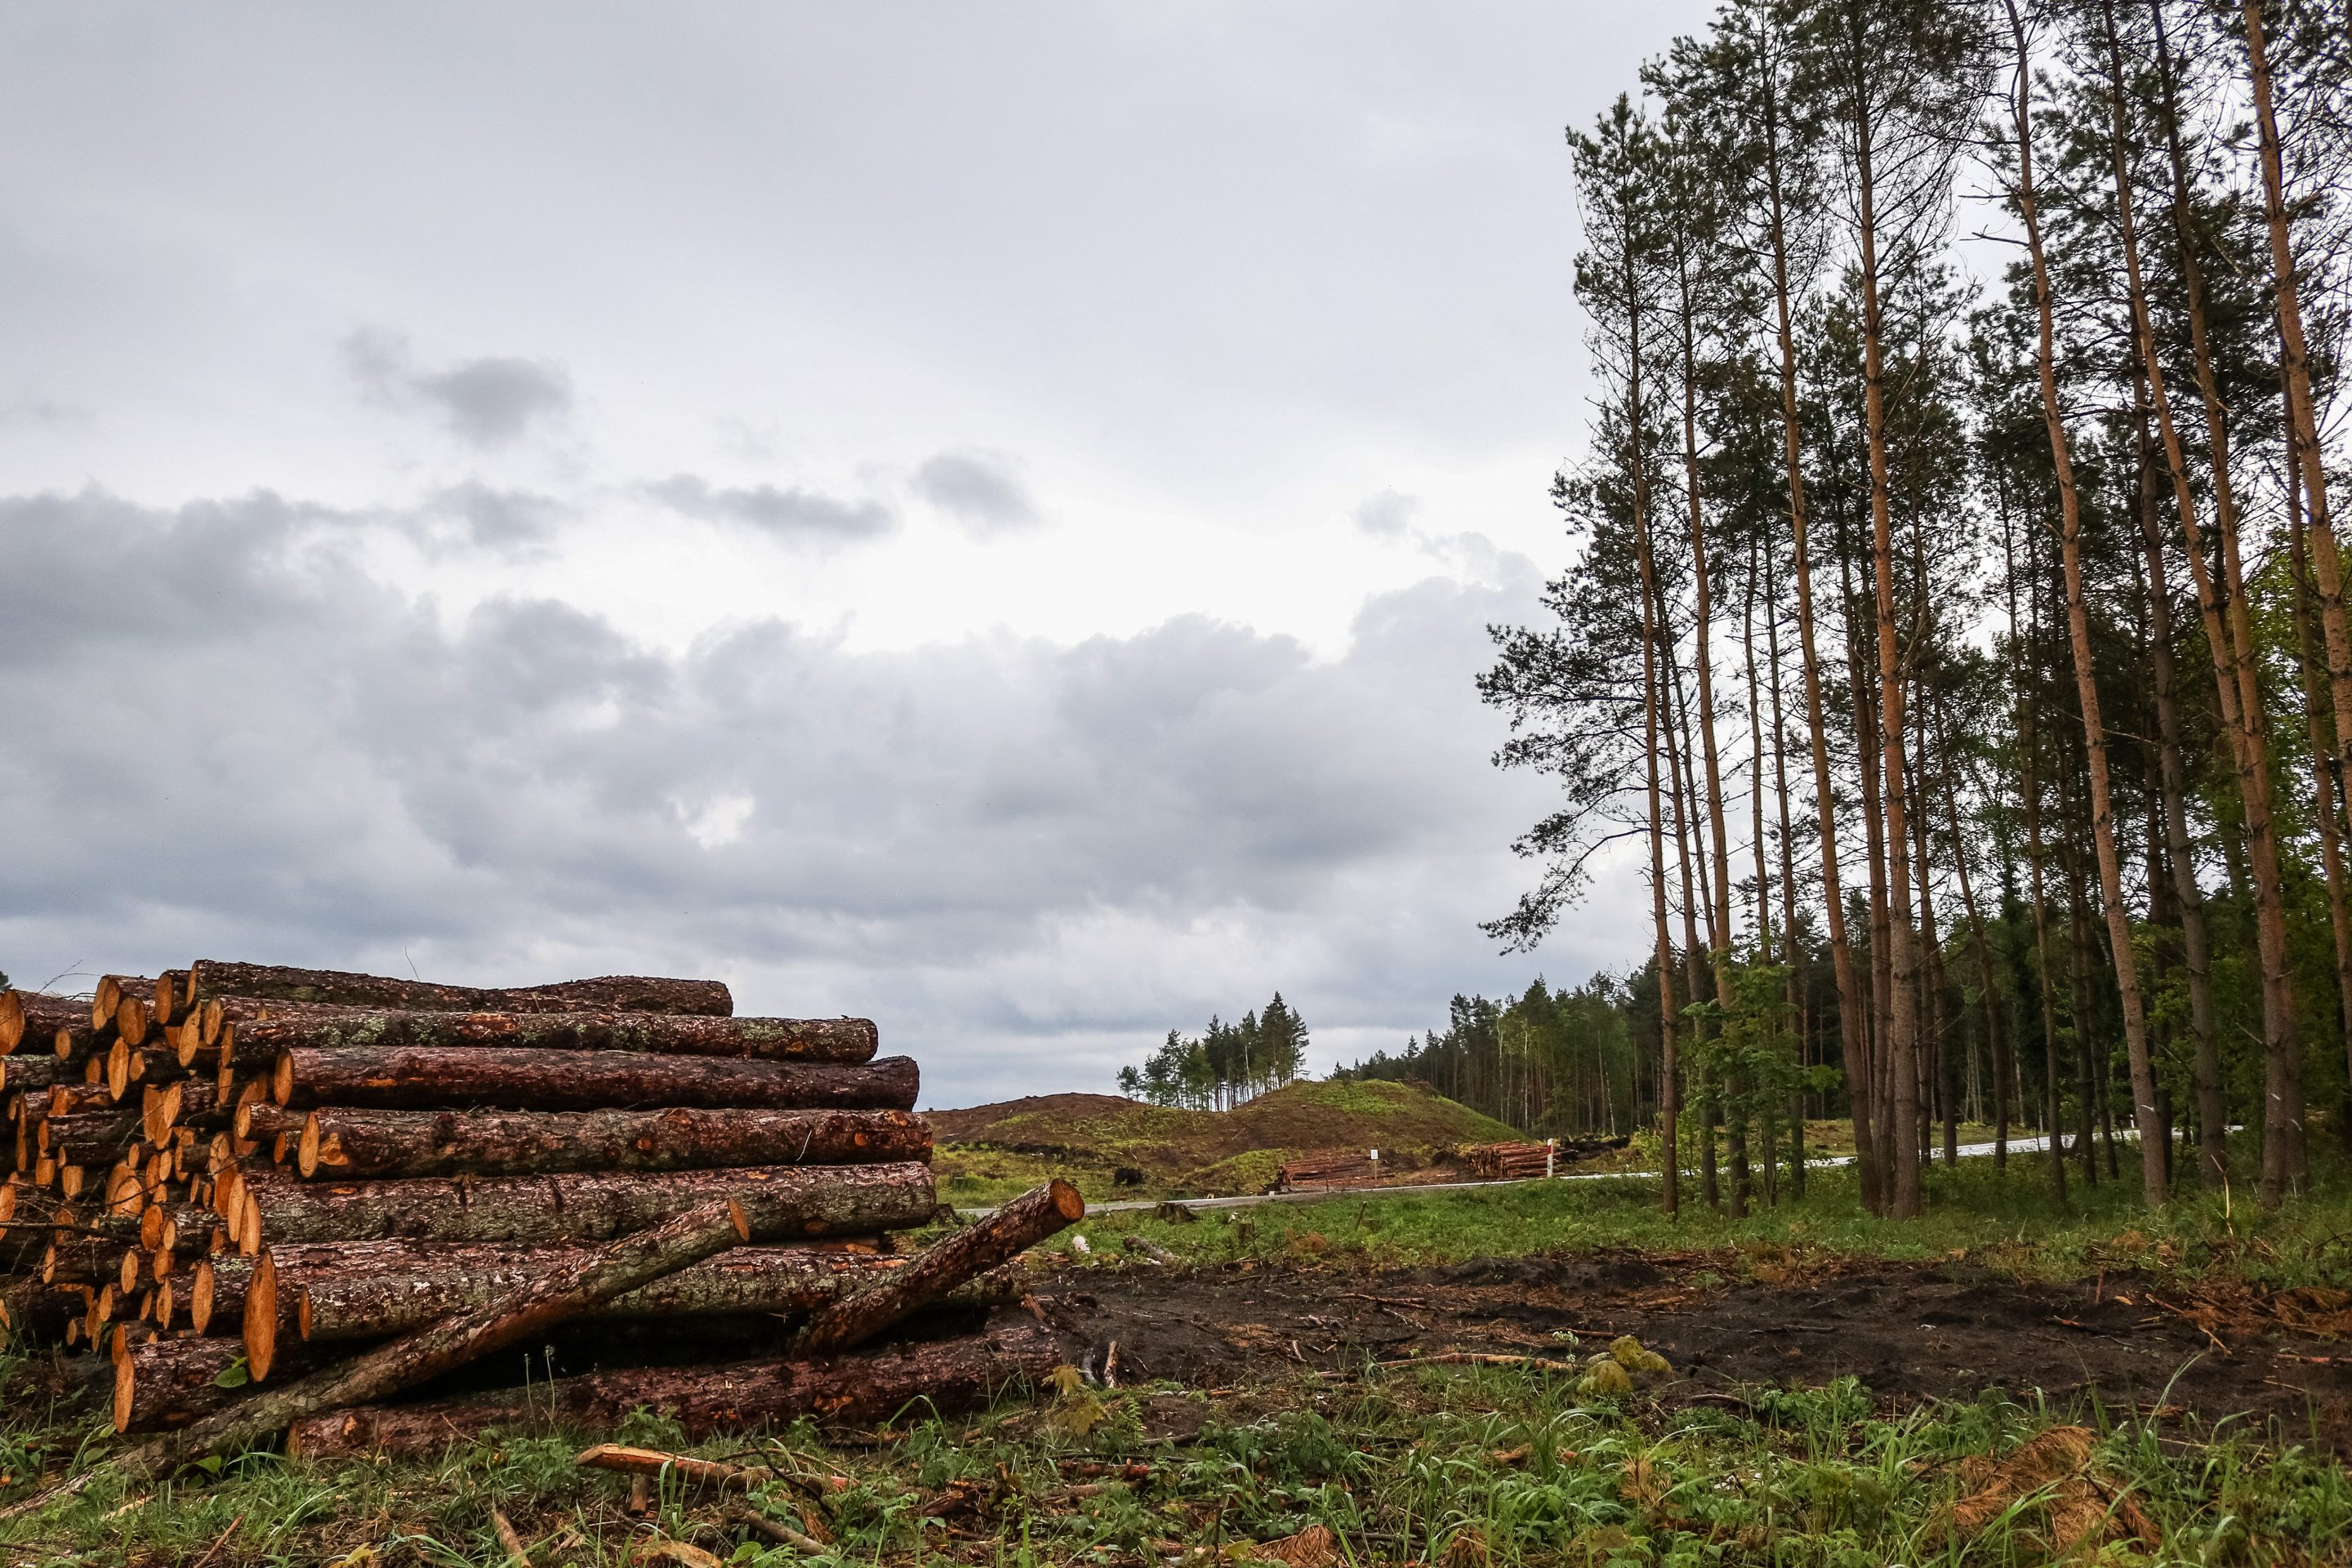 Mass forest logging place is seen between Skowronki village and Krynica Morska, Poland on 17 May 2019.